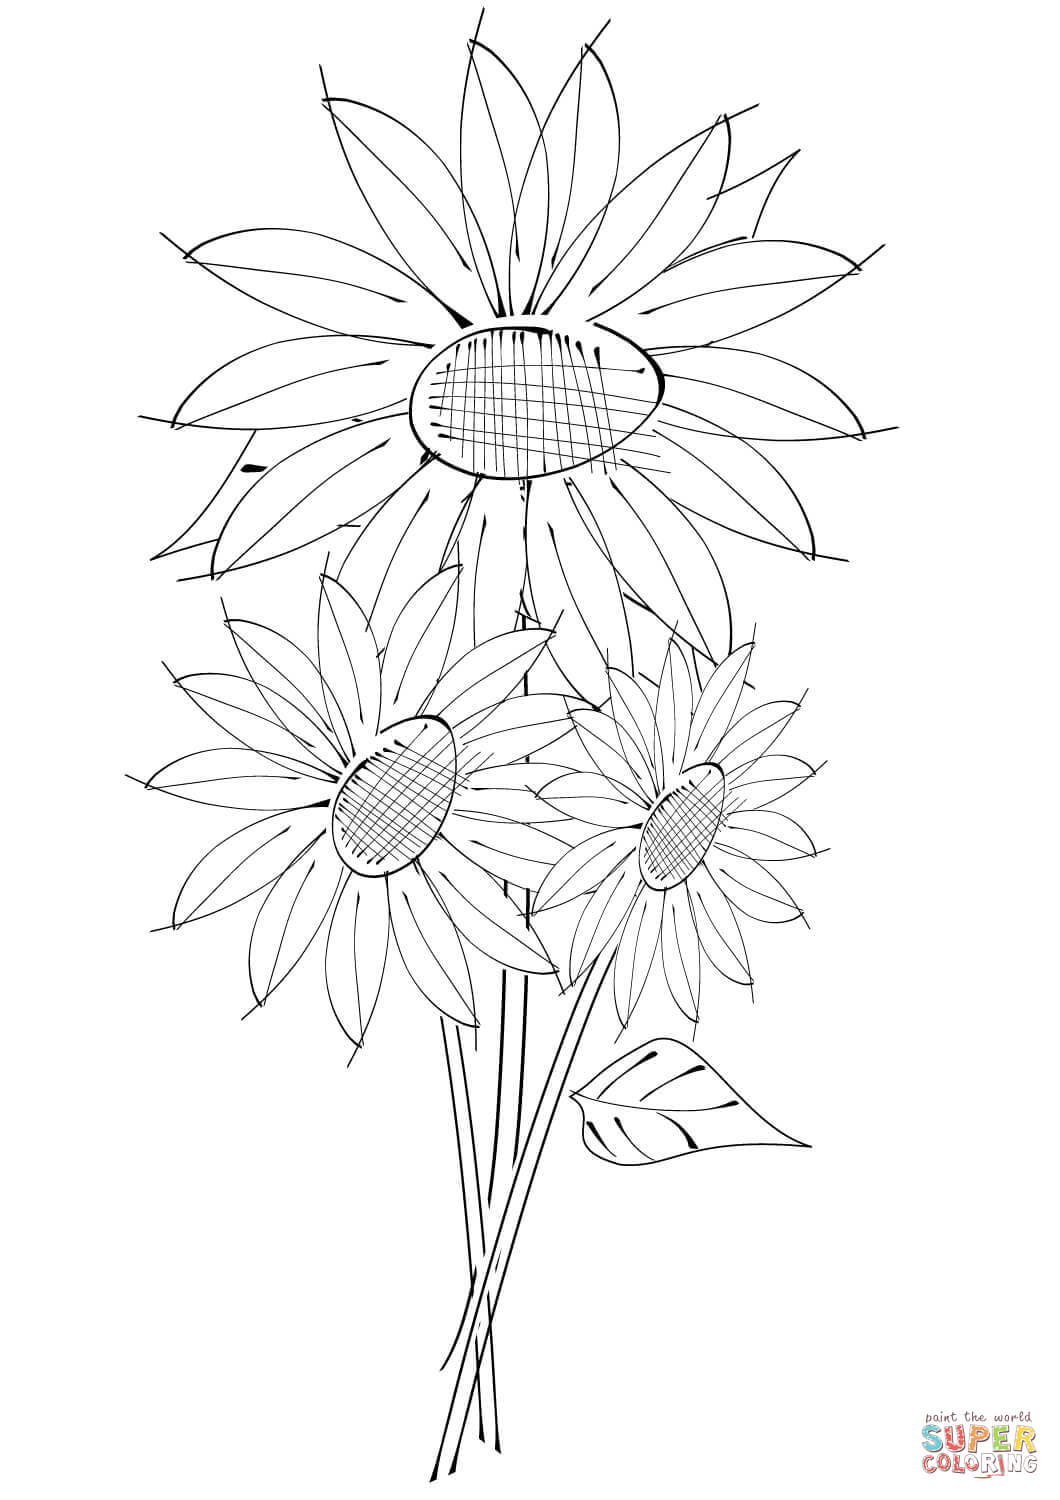 sunflower coloring sunflower drawing color at getdrawings free download coloring sunflower